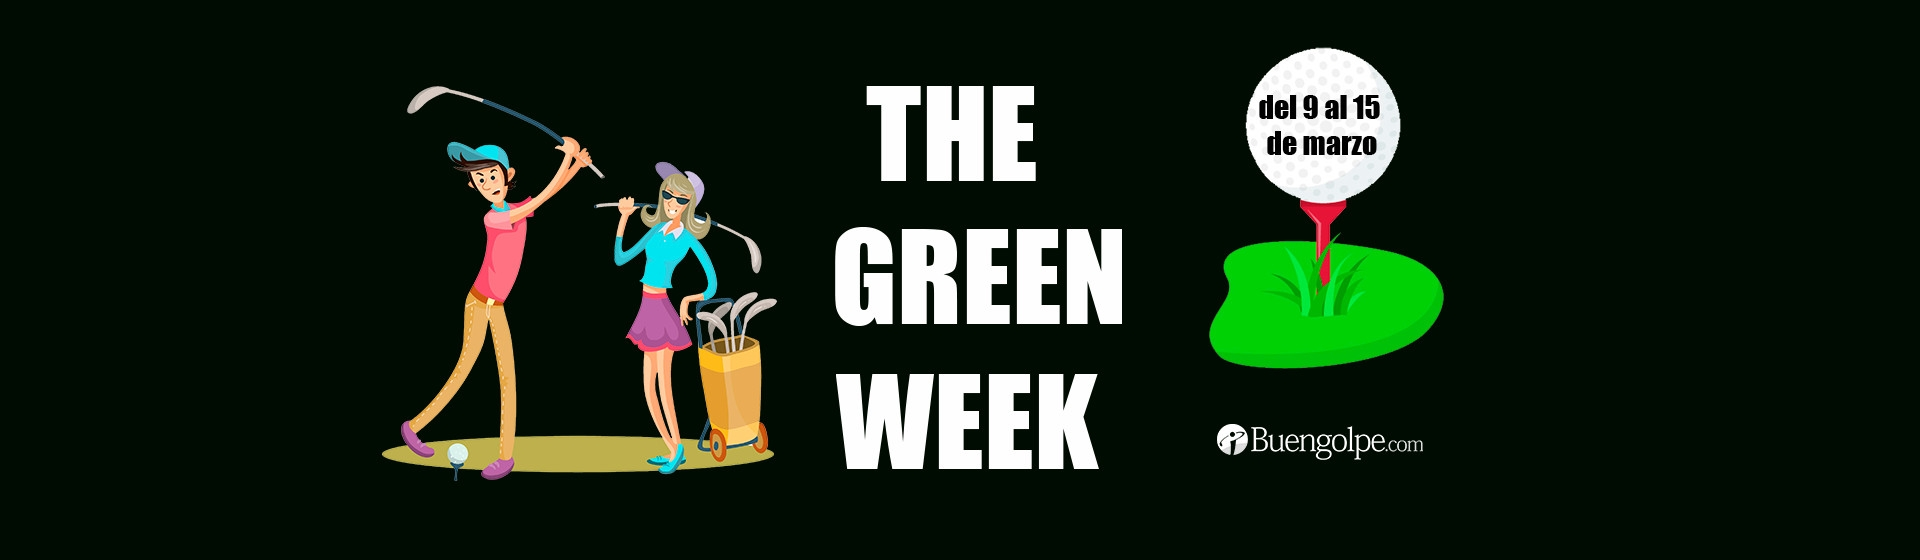 The Green Week Buengolpe